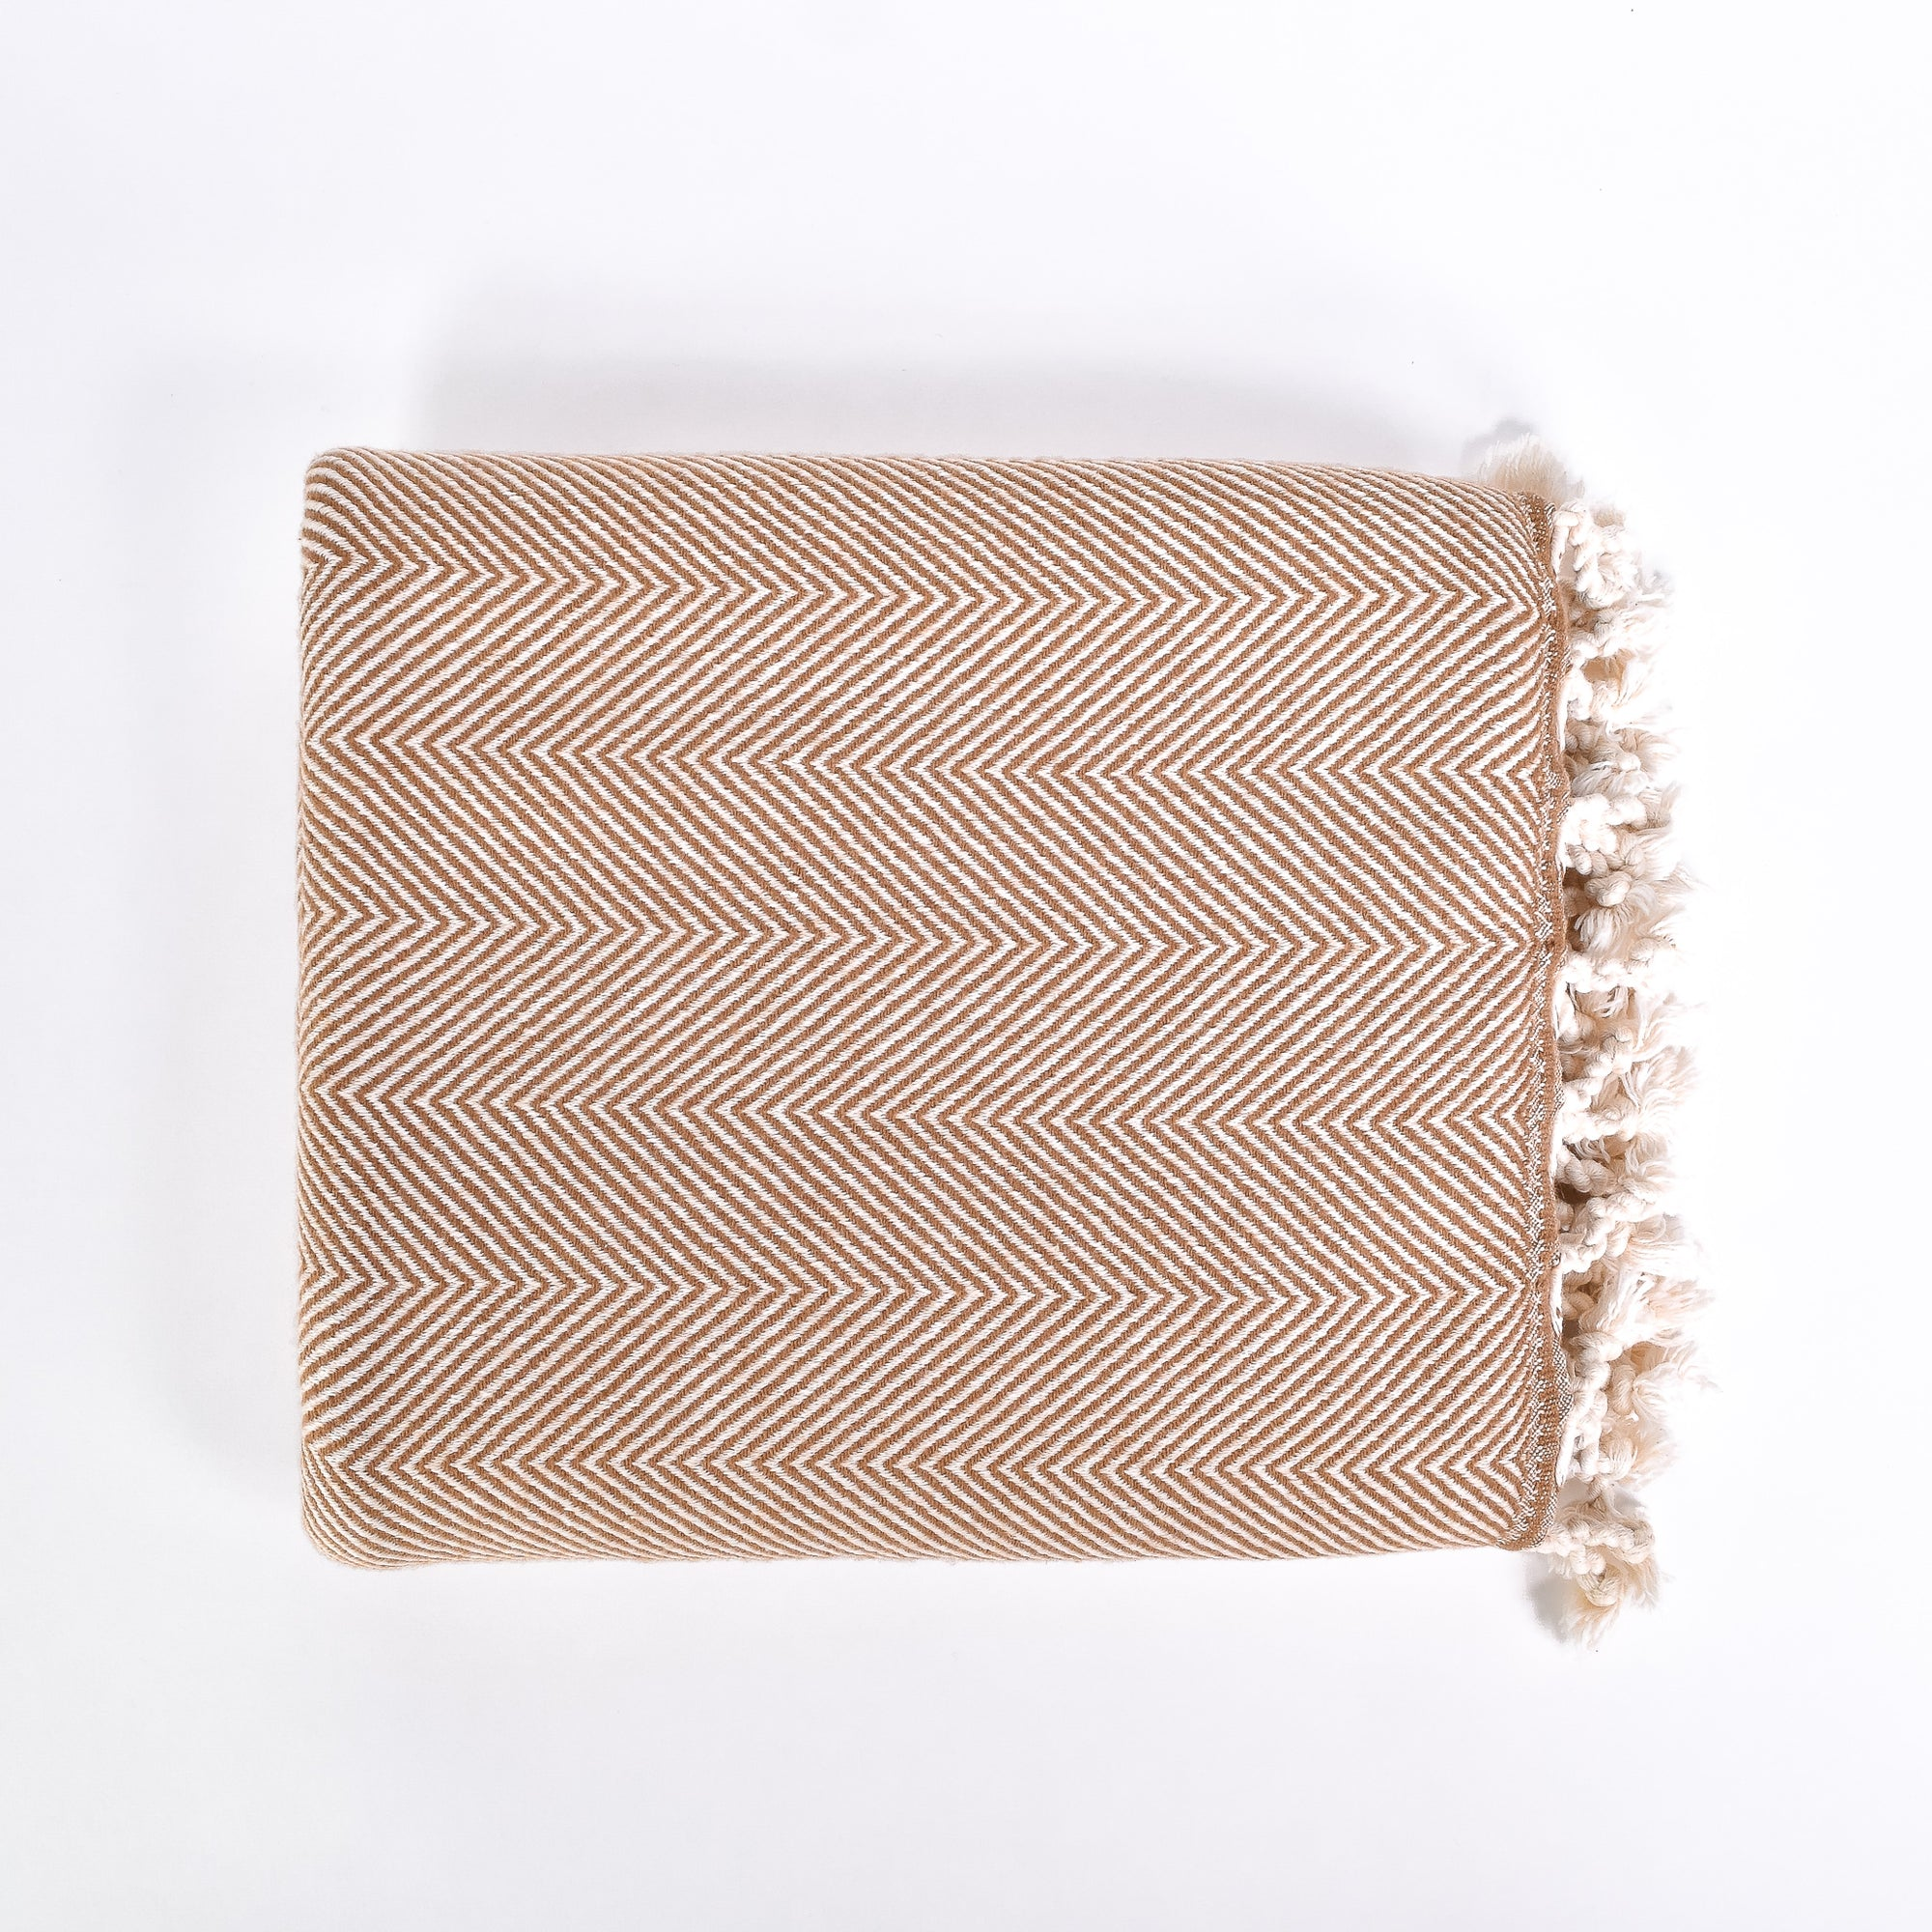 Cinnamon Herringbone Throw - Rug & Weave